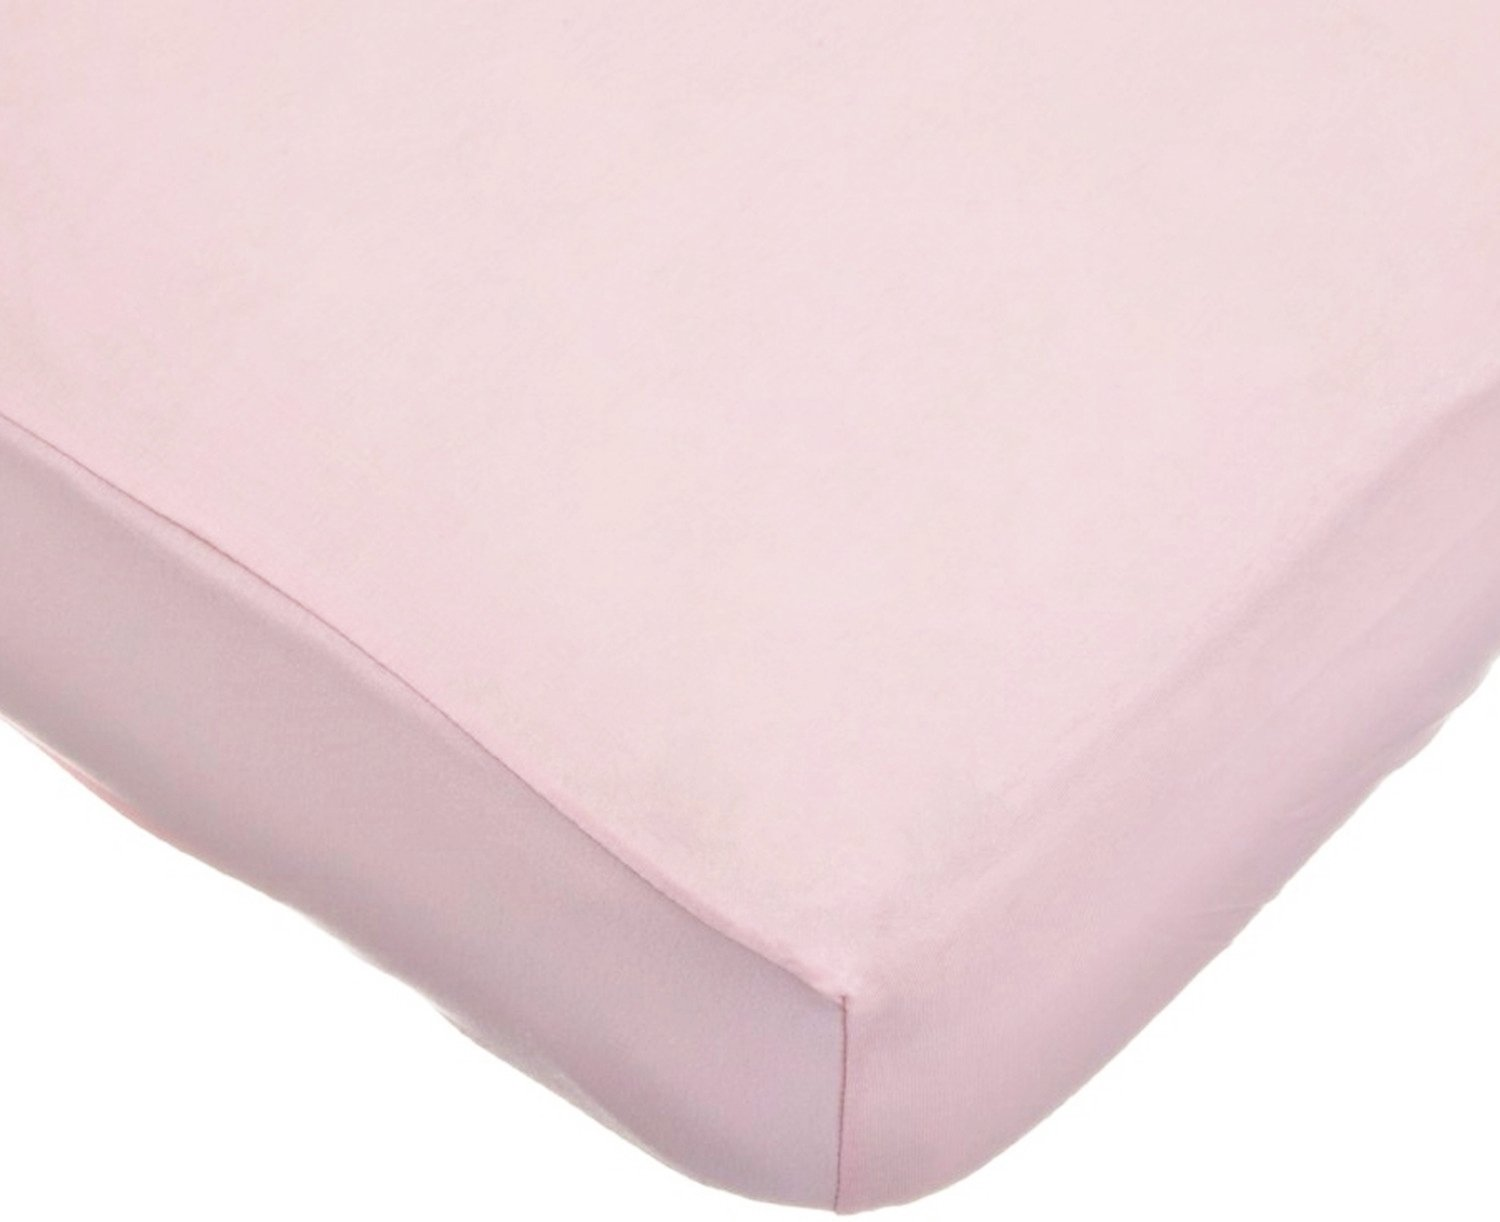 American Baby Company 100% Cotton Jersey Knit Fitted Crib Sheet for Standard Crib and Toddler Mattresses,  Pink